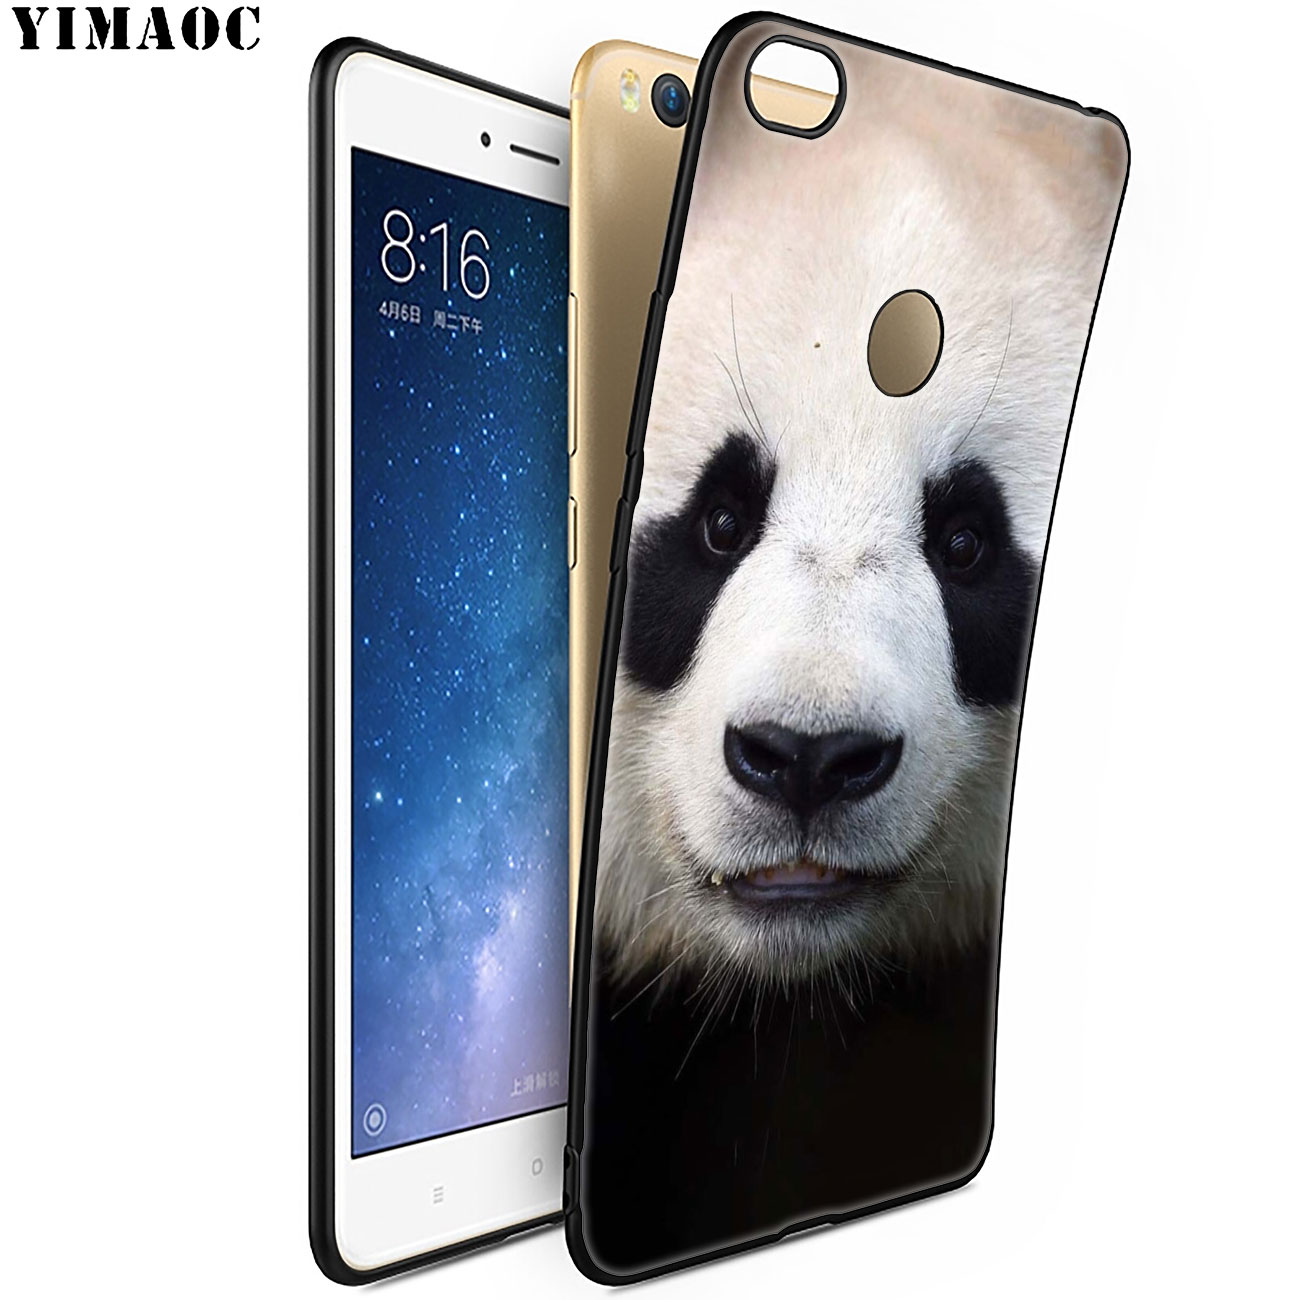 Fitted Cases Cute Little Horse Phone Case For Xiaomi Mi 8 Lite Novelty Silicone Case For For Xiaomi Mi8 Lite Cover For Xiaomi Mi8 Coque Capa Cellphones & Telecommunications